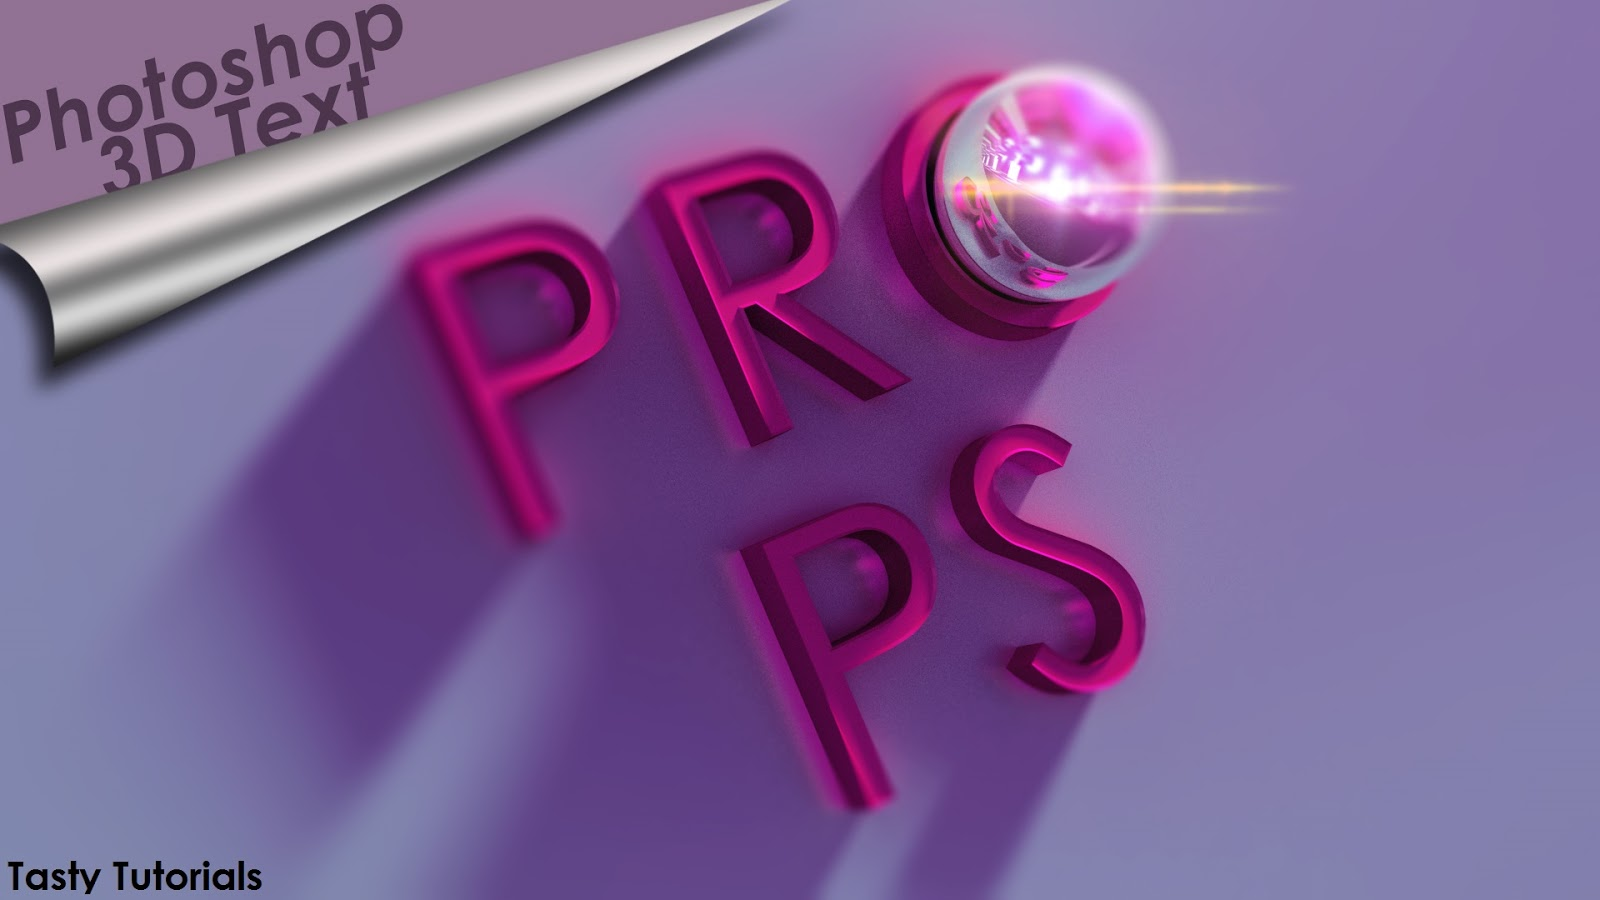 Photoshop cs6 3d text tutorial pdf